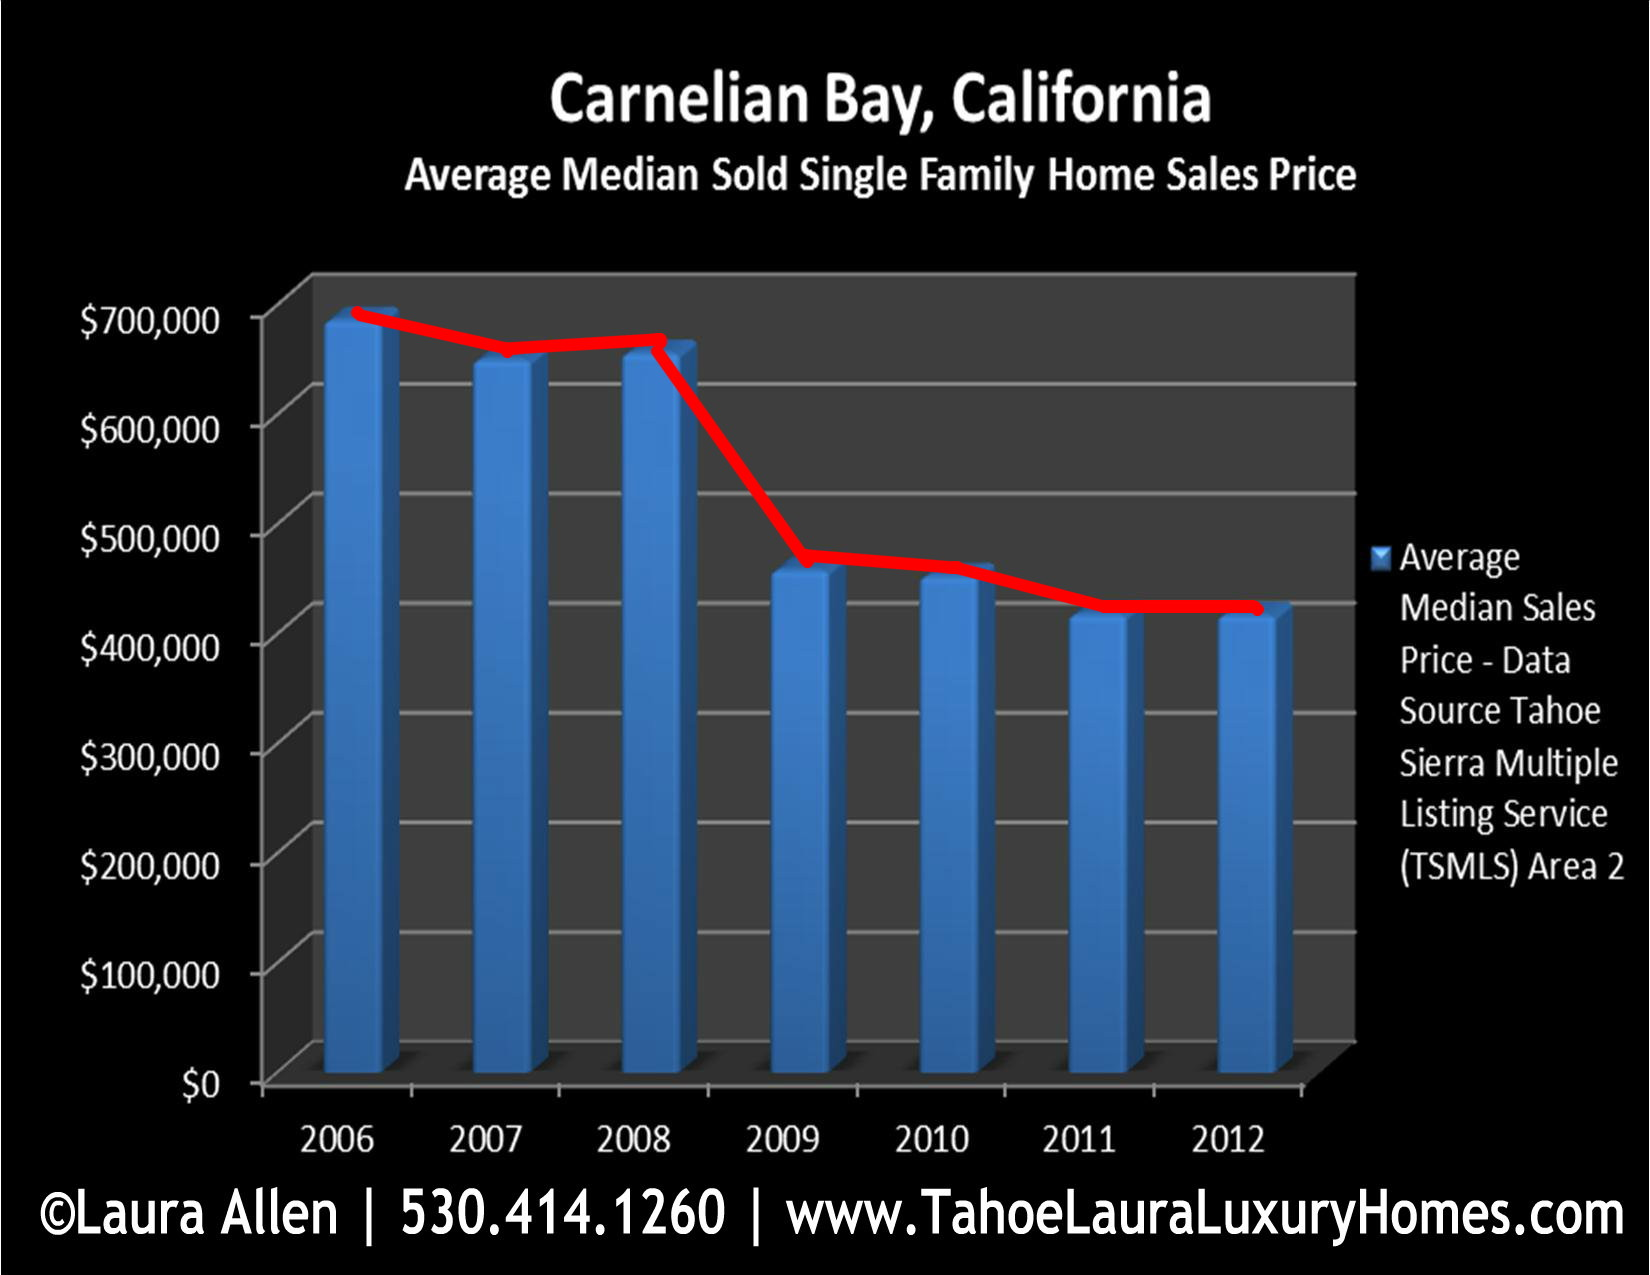 carnelian bay singles Carnelian bay real estate and luxury homes for sale in lake tahoe view tahoe lakefront real estate listings and information about carnelian bay, ca sell your carnelian bay real estate with tahoe realtor dave westall 530-448-9882.